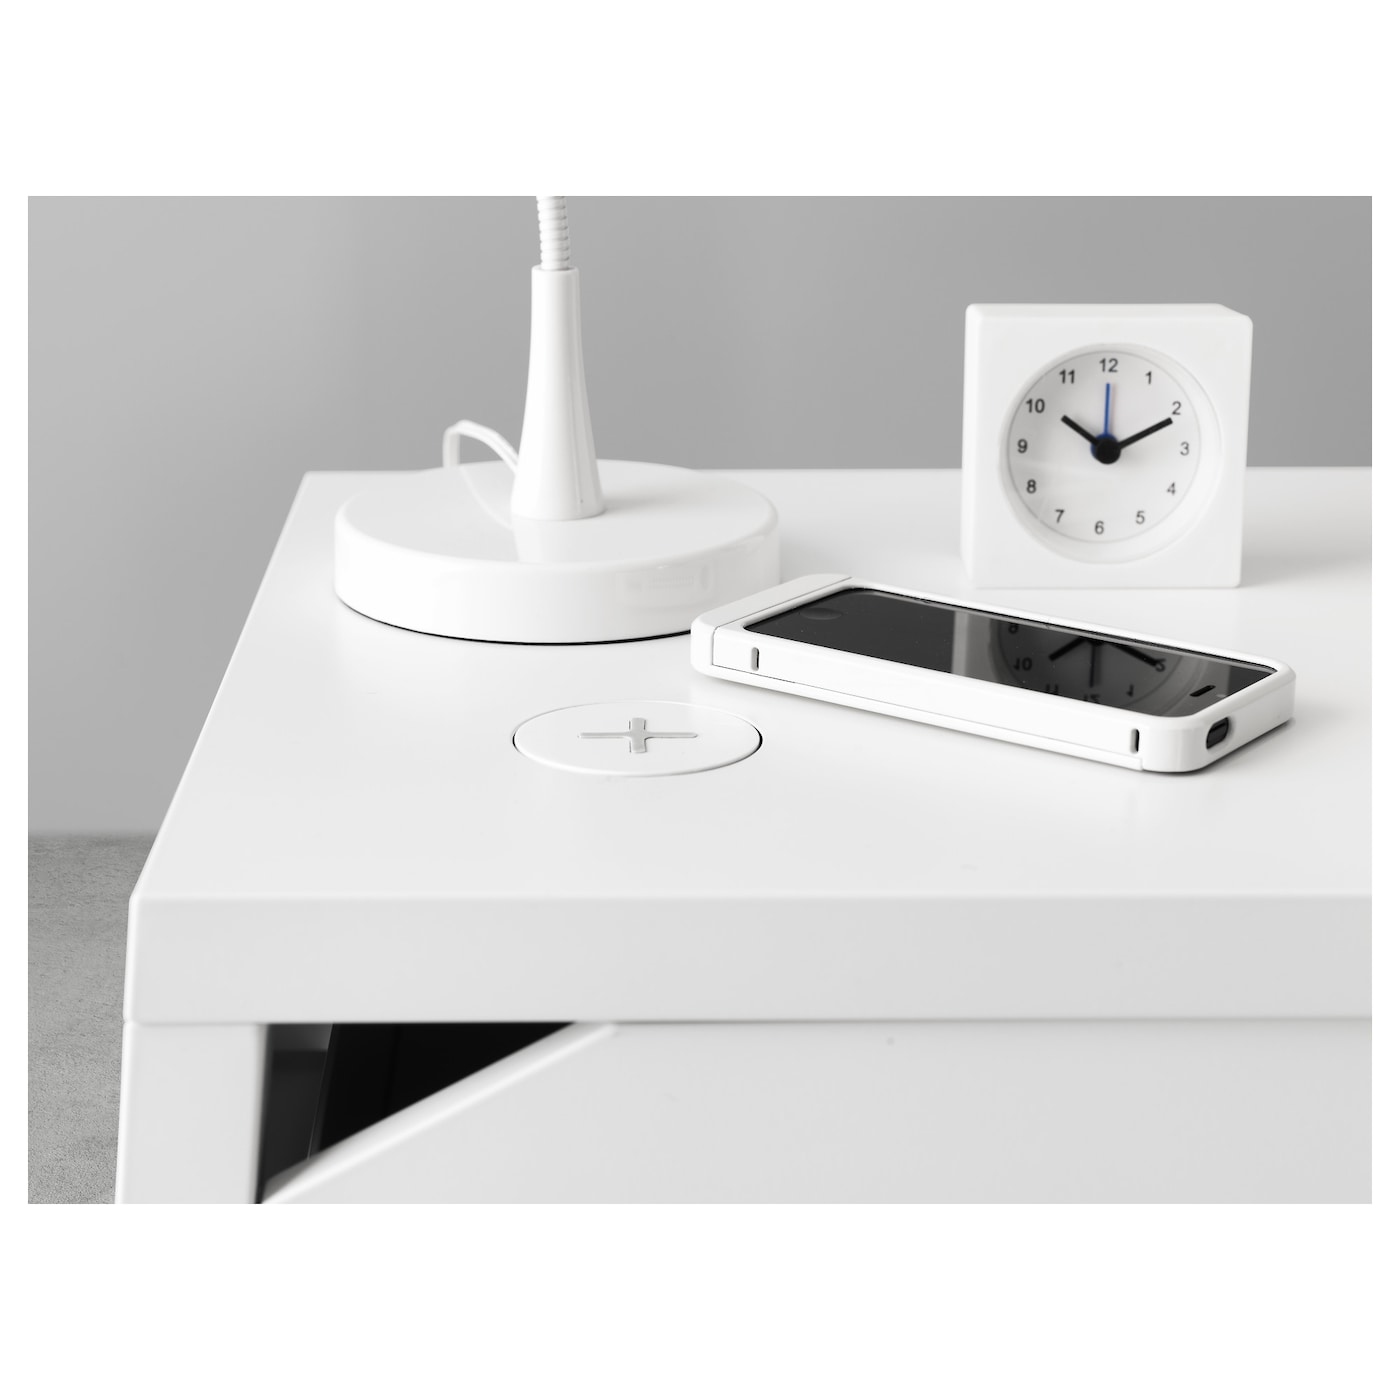 how to use ikea wireless charger